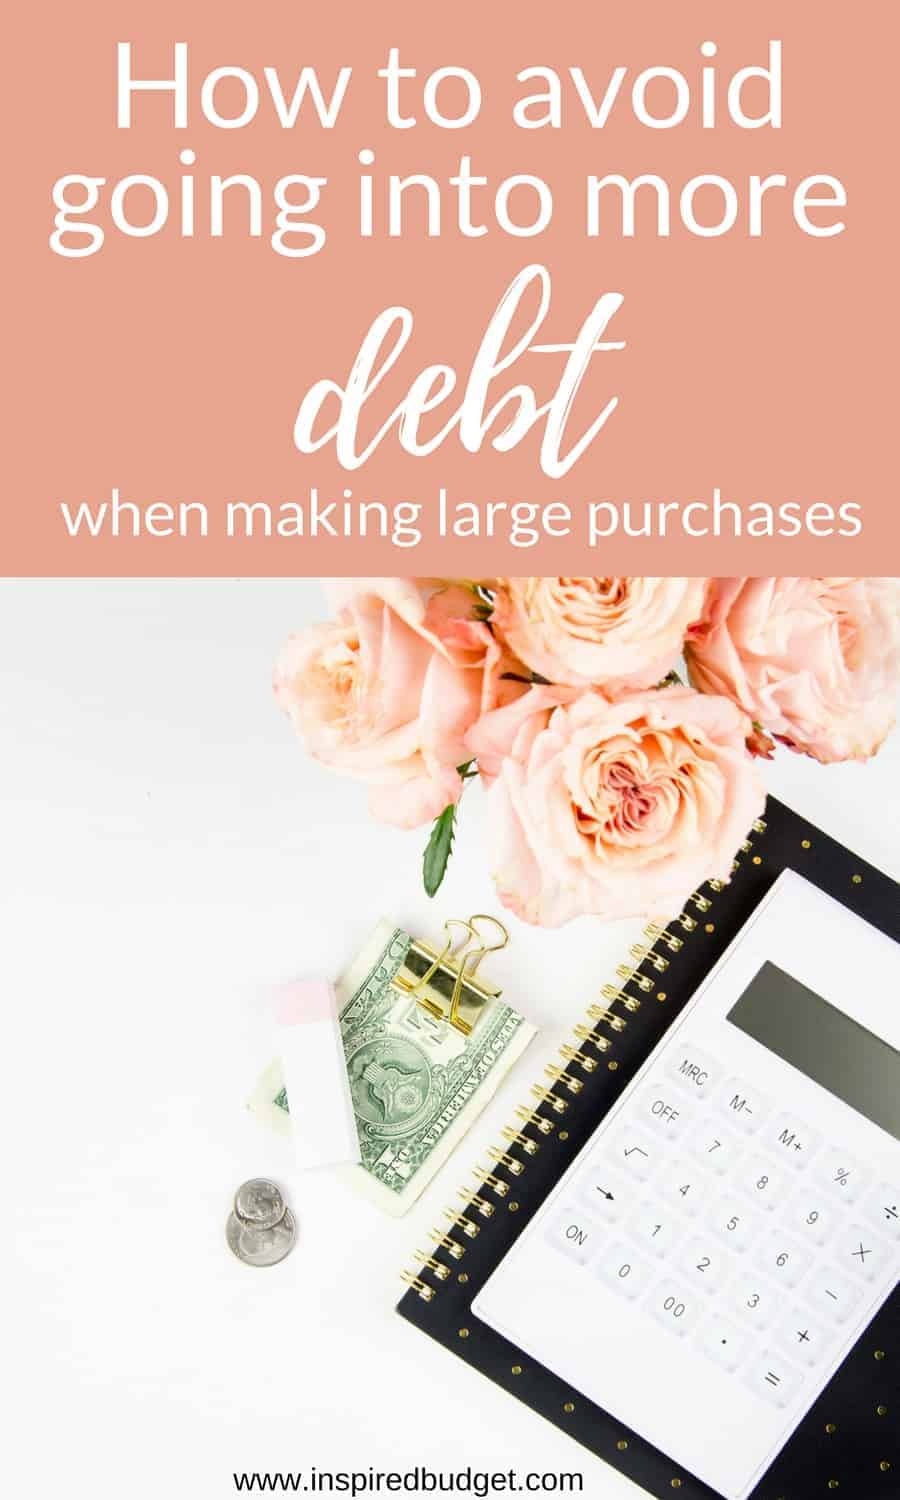 How To Make Big Purchases Without Going Into Debt